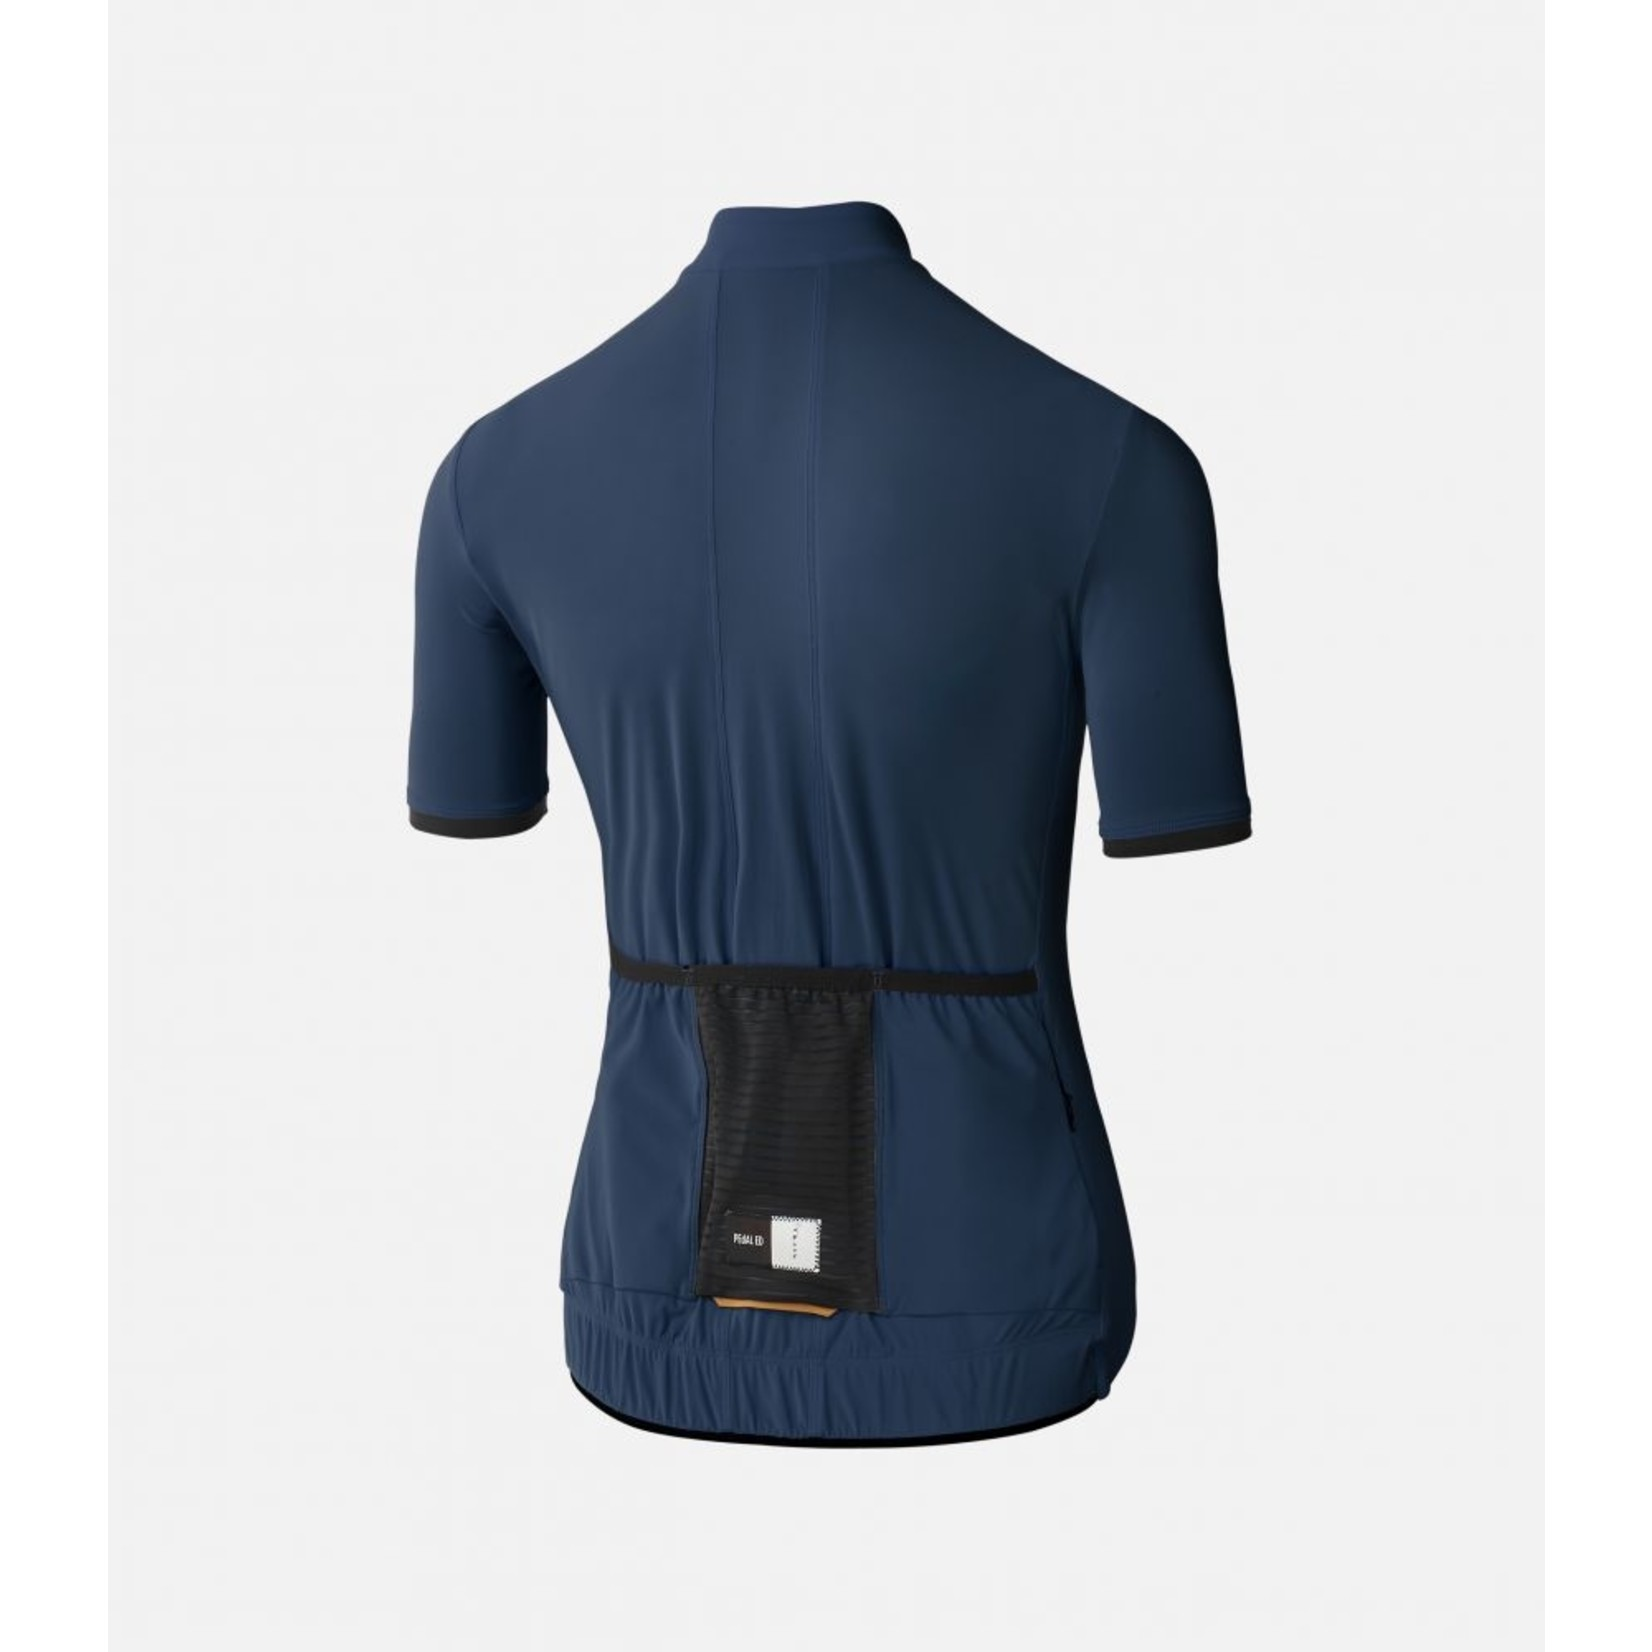 PEdALED PEdALED Women kawa essential Jersey L Navy